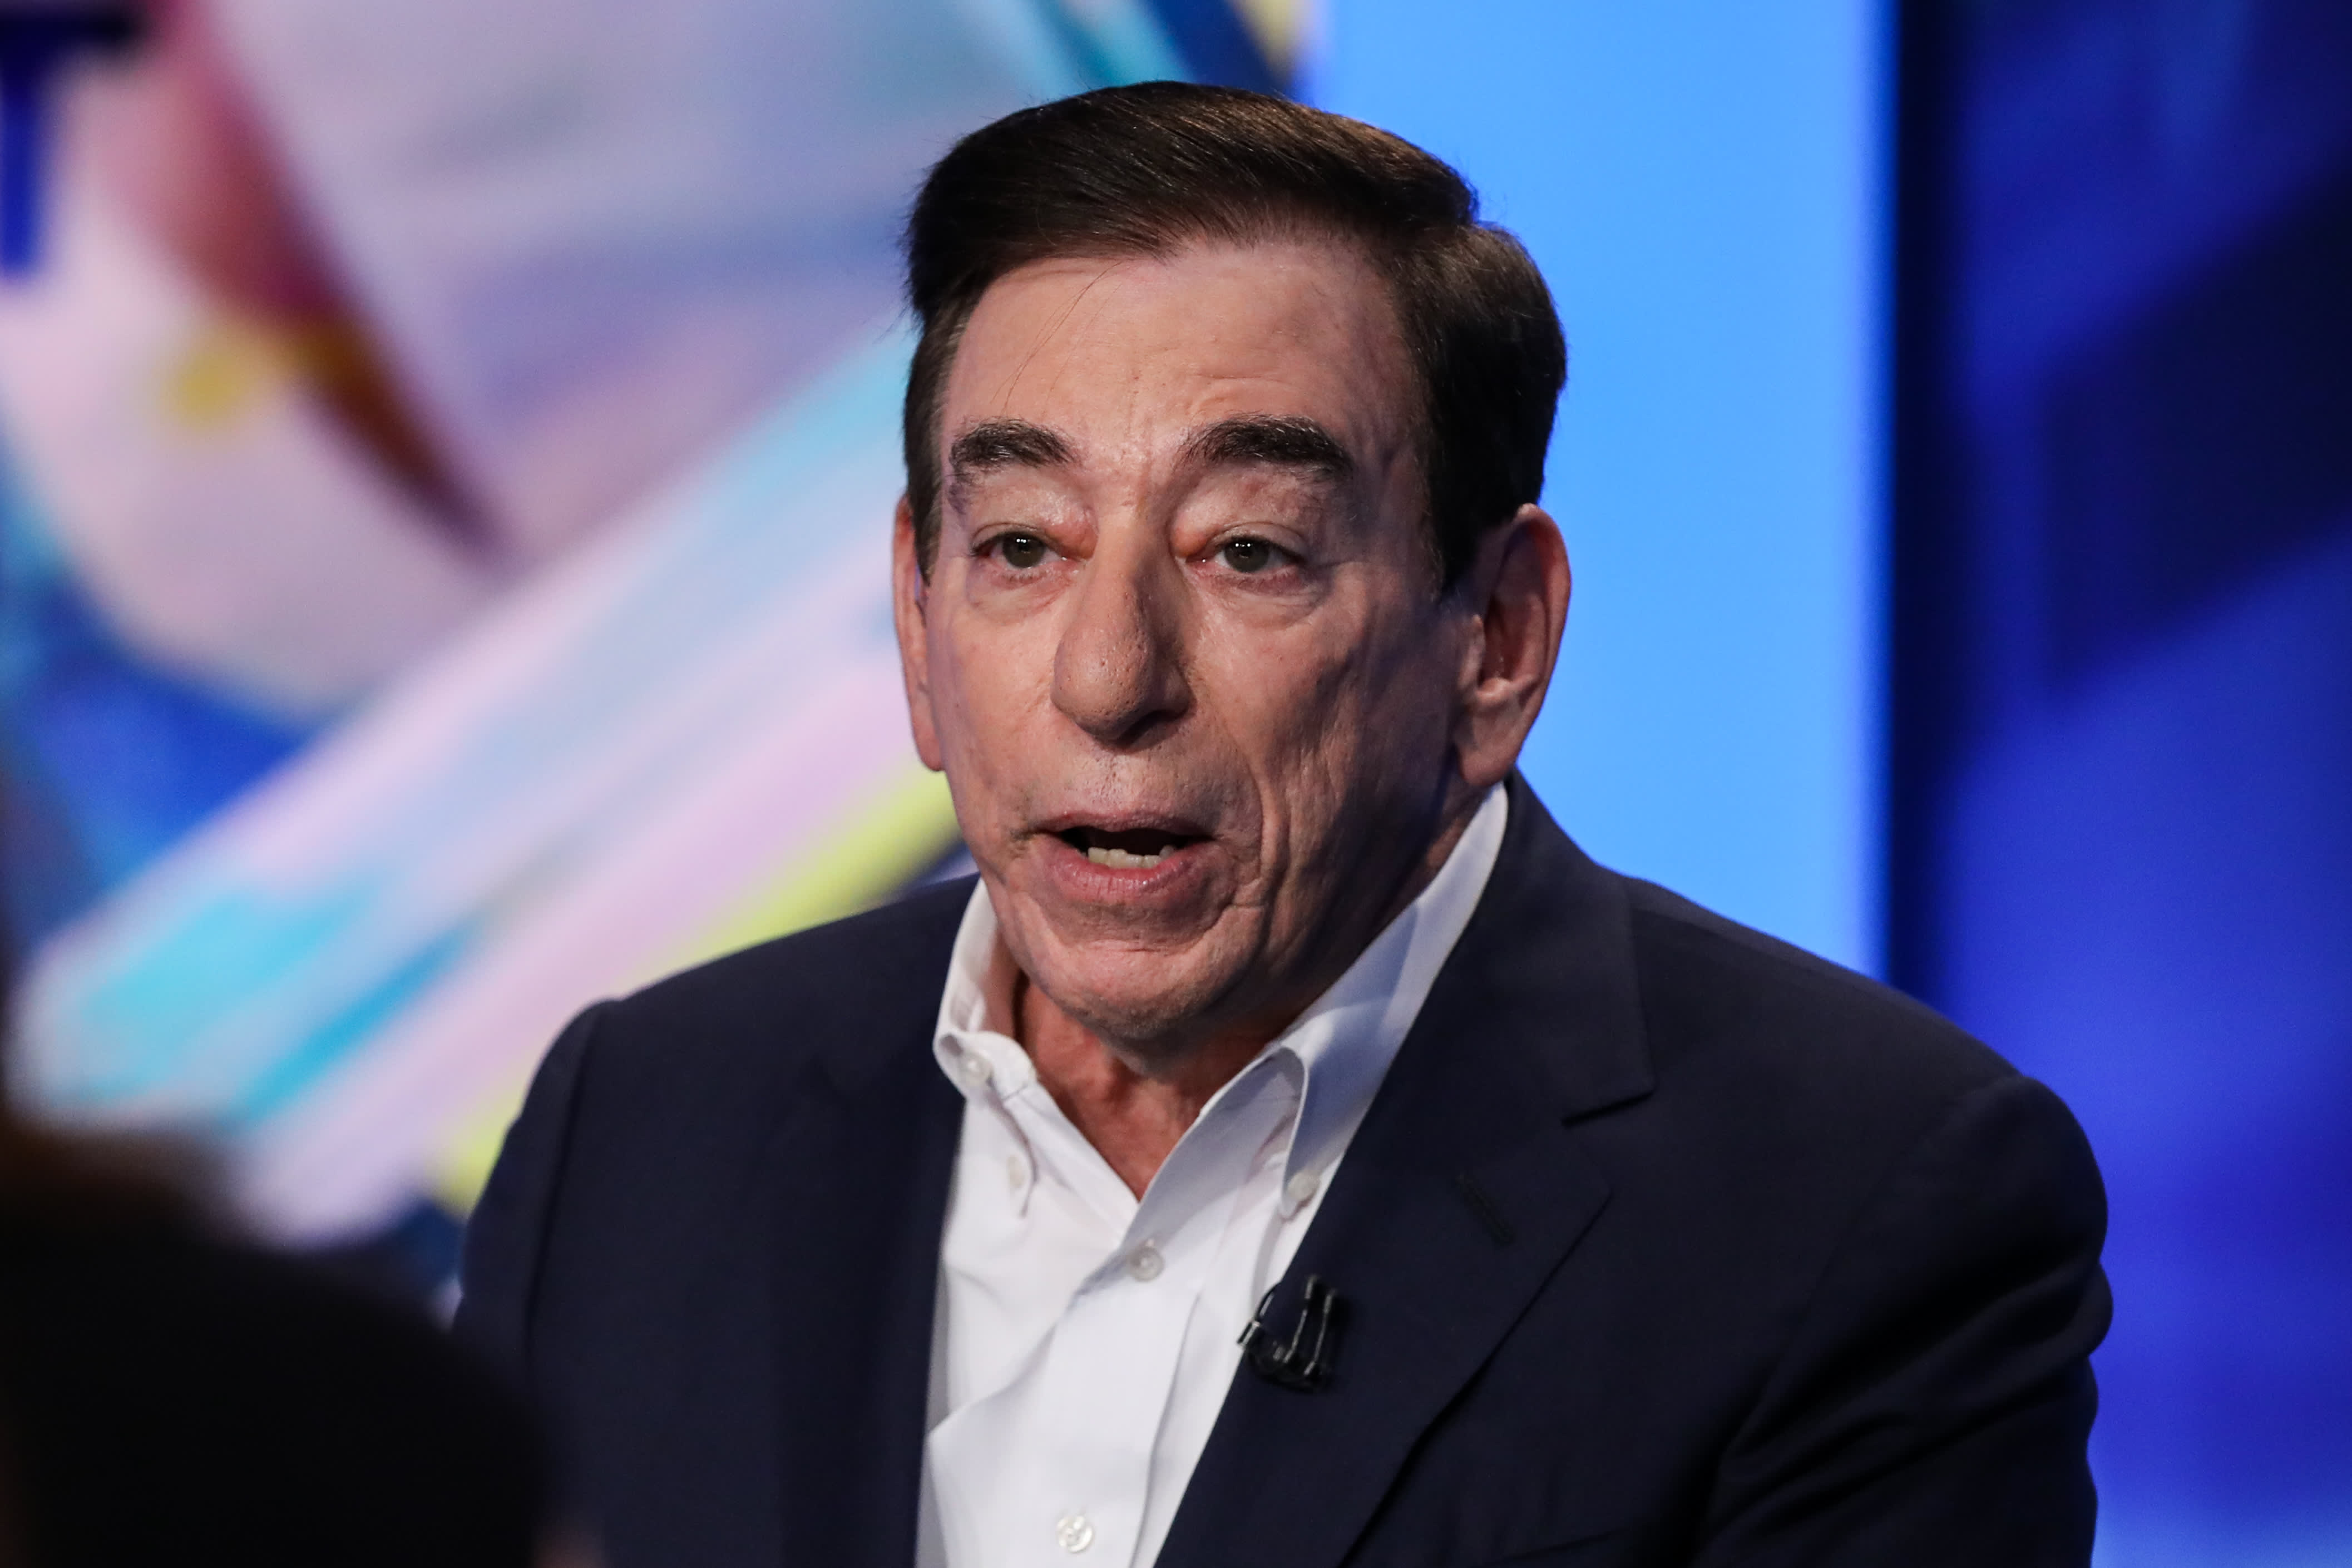 Regeneron will provide 300,000 doses of Covid treatment for U.S. by early January, CEO Schleifer says